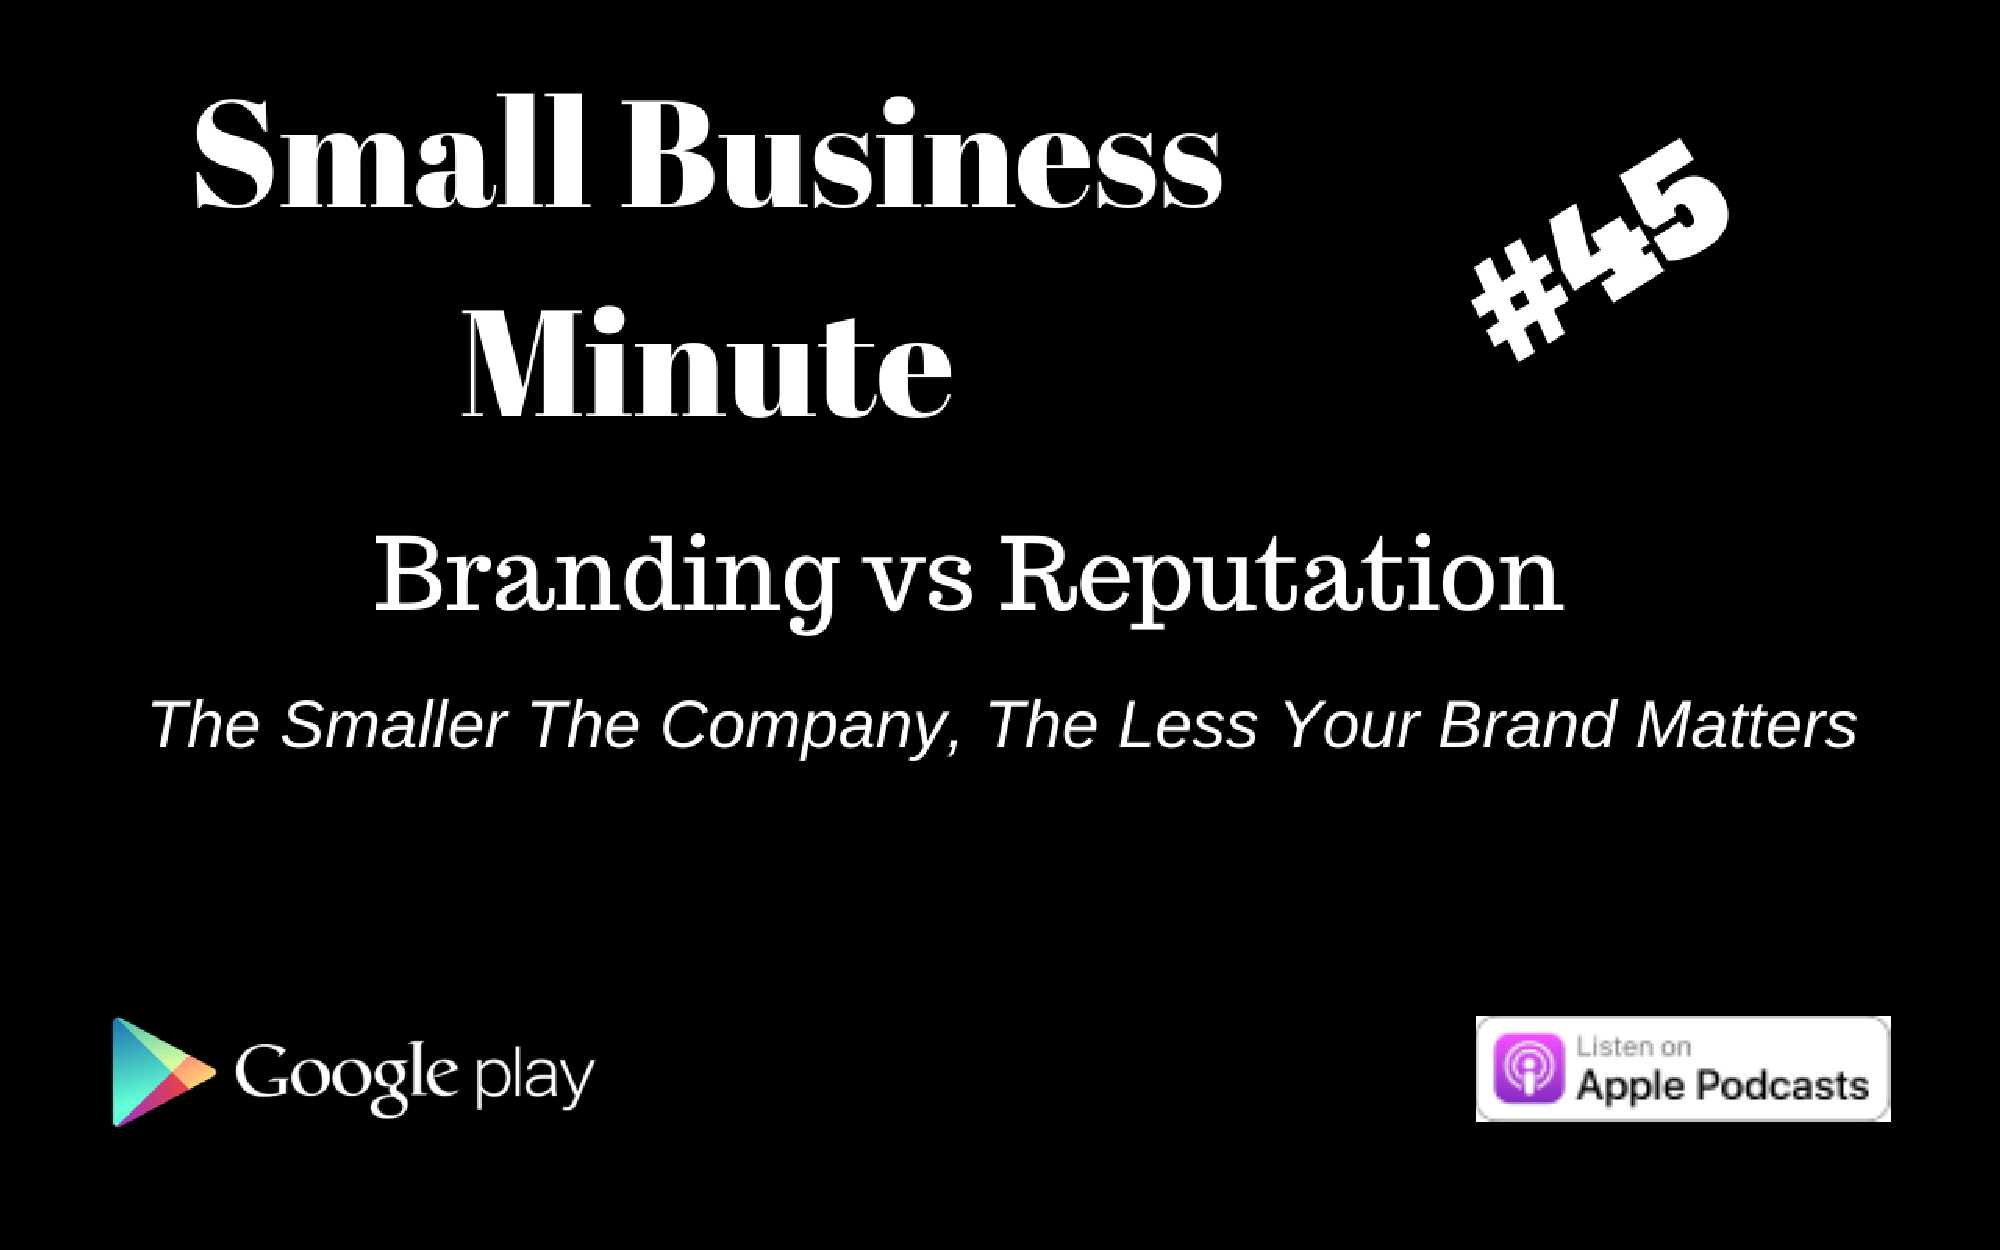 Small Business Minute #45 Branding vs Reputation